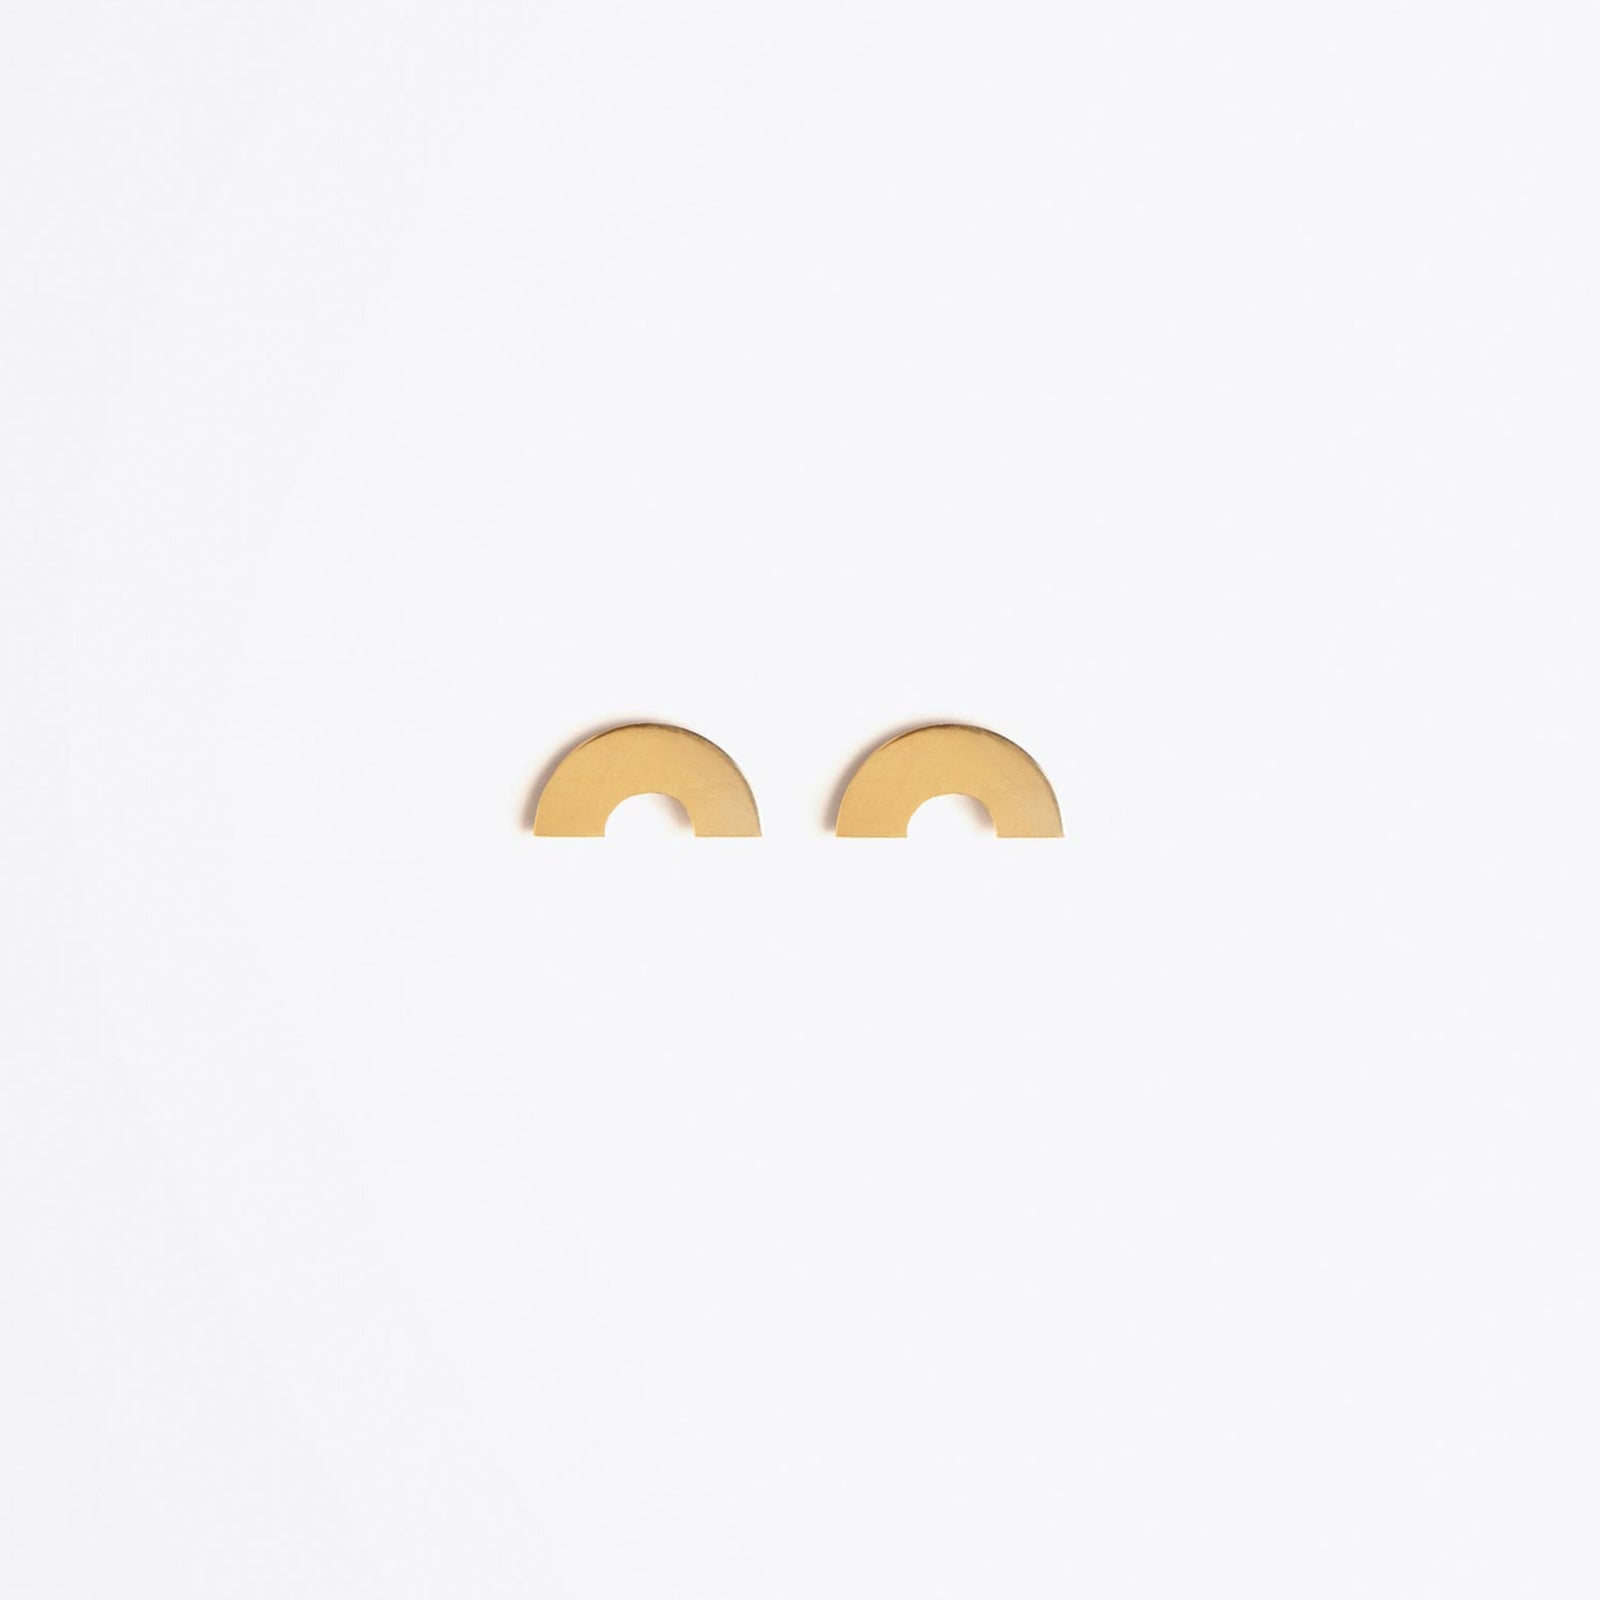 gold stud earring | luna crescent